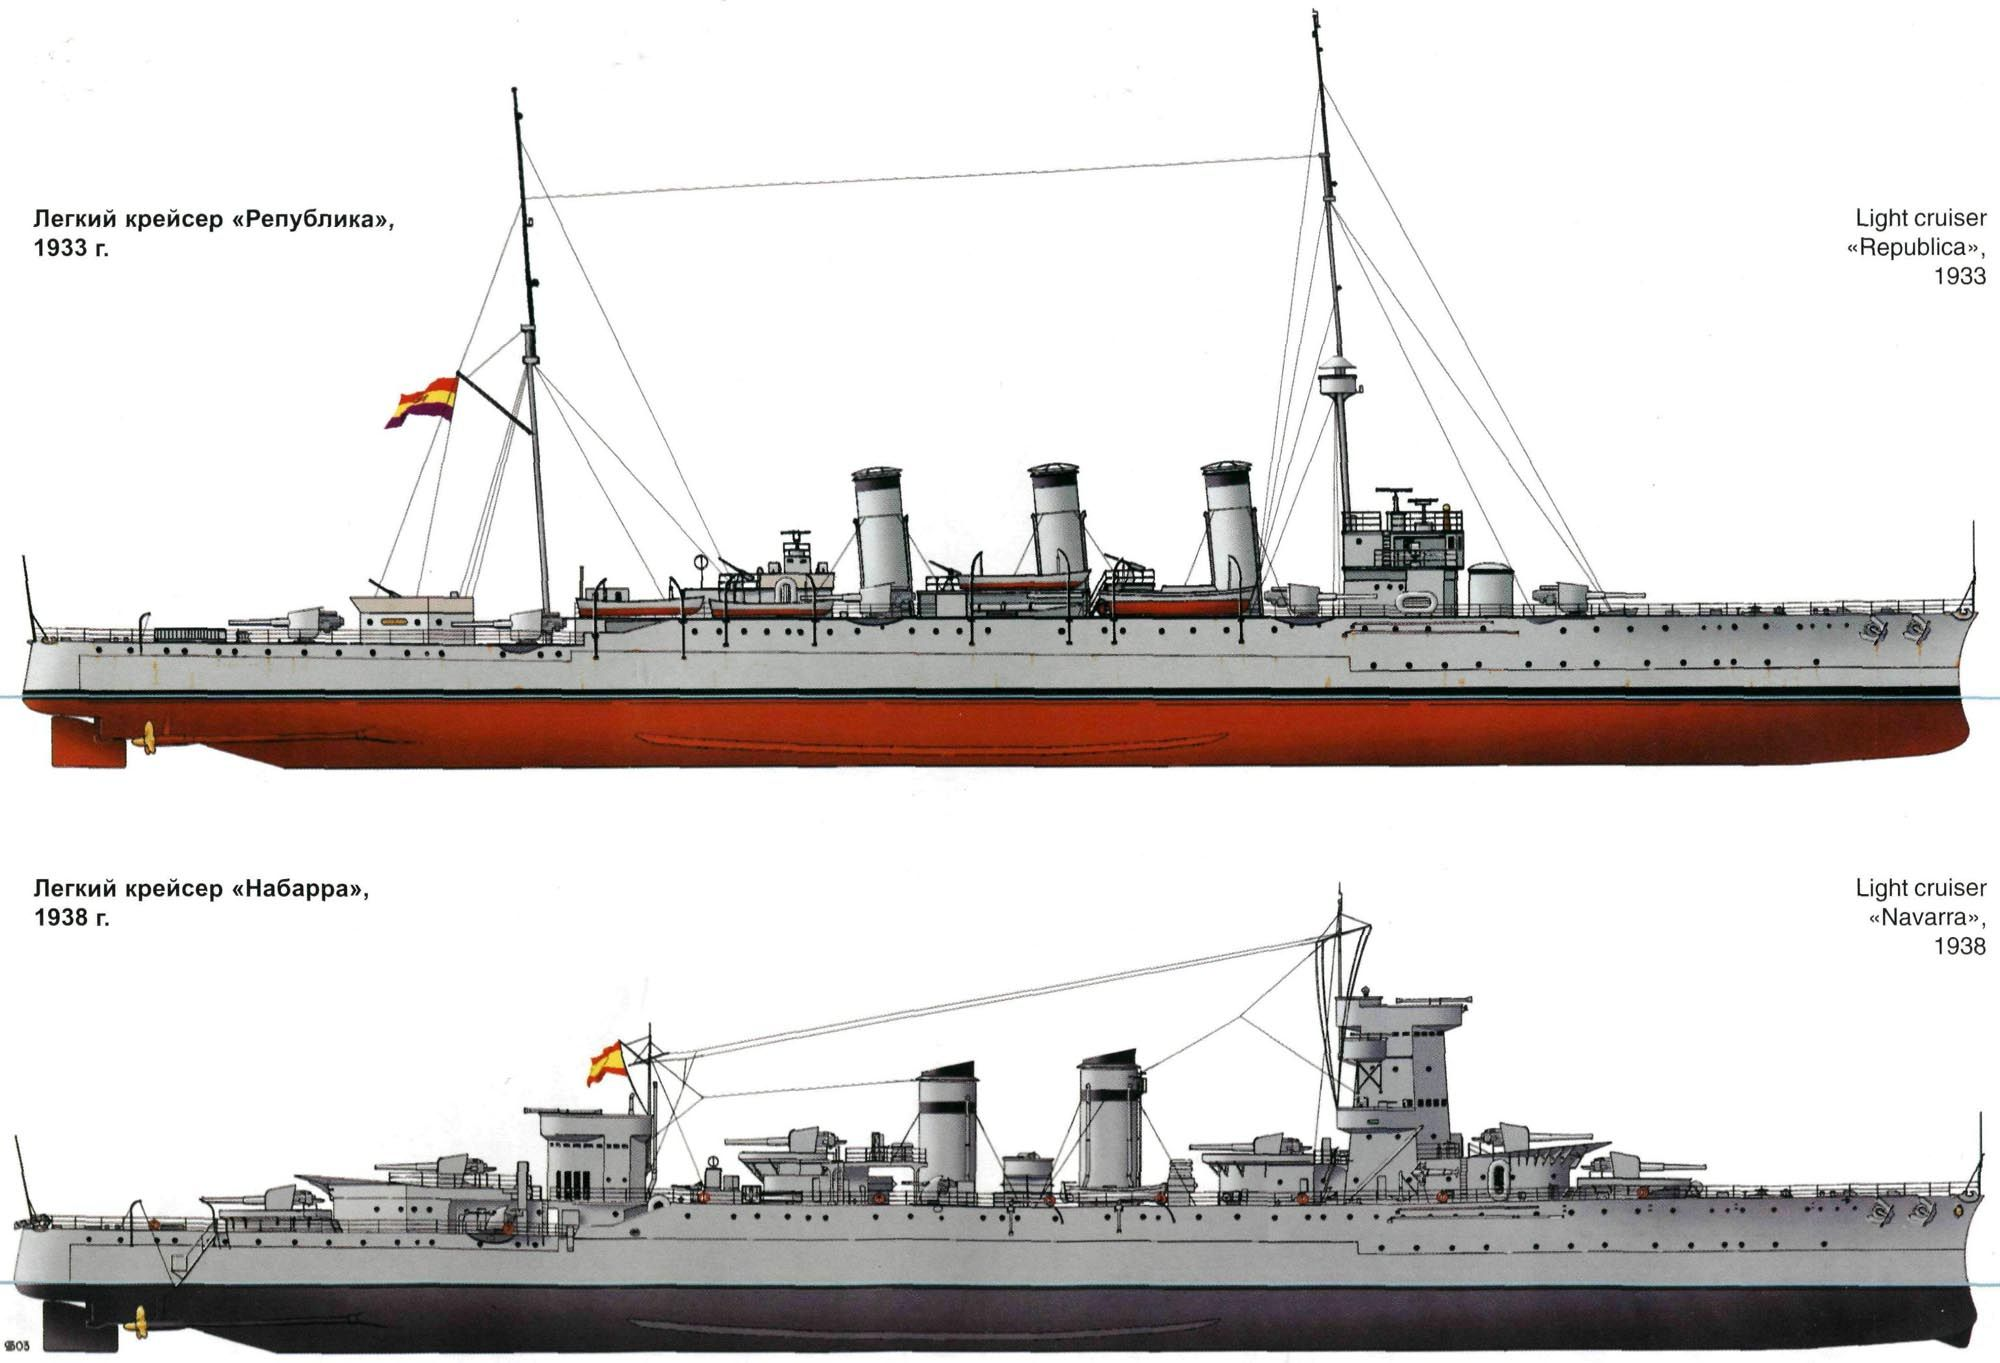 Reina Vitoria Eugenia and Navarra after reconstruction